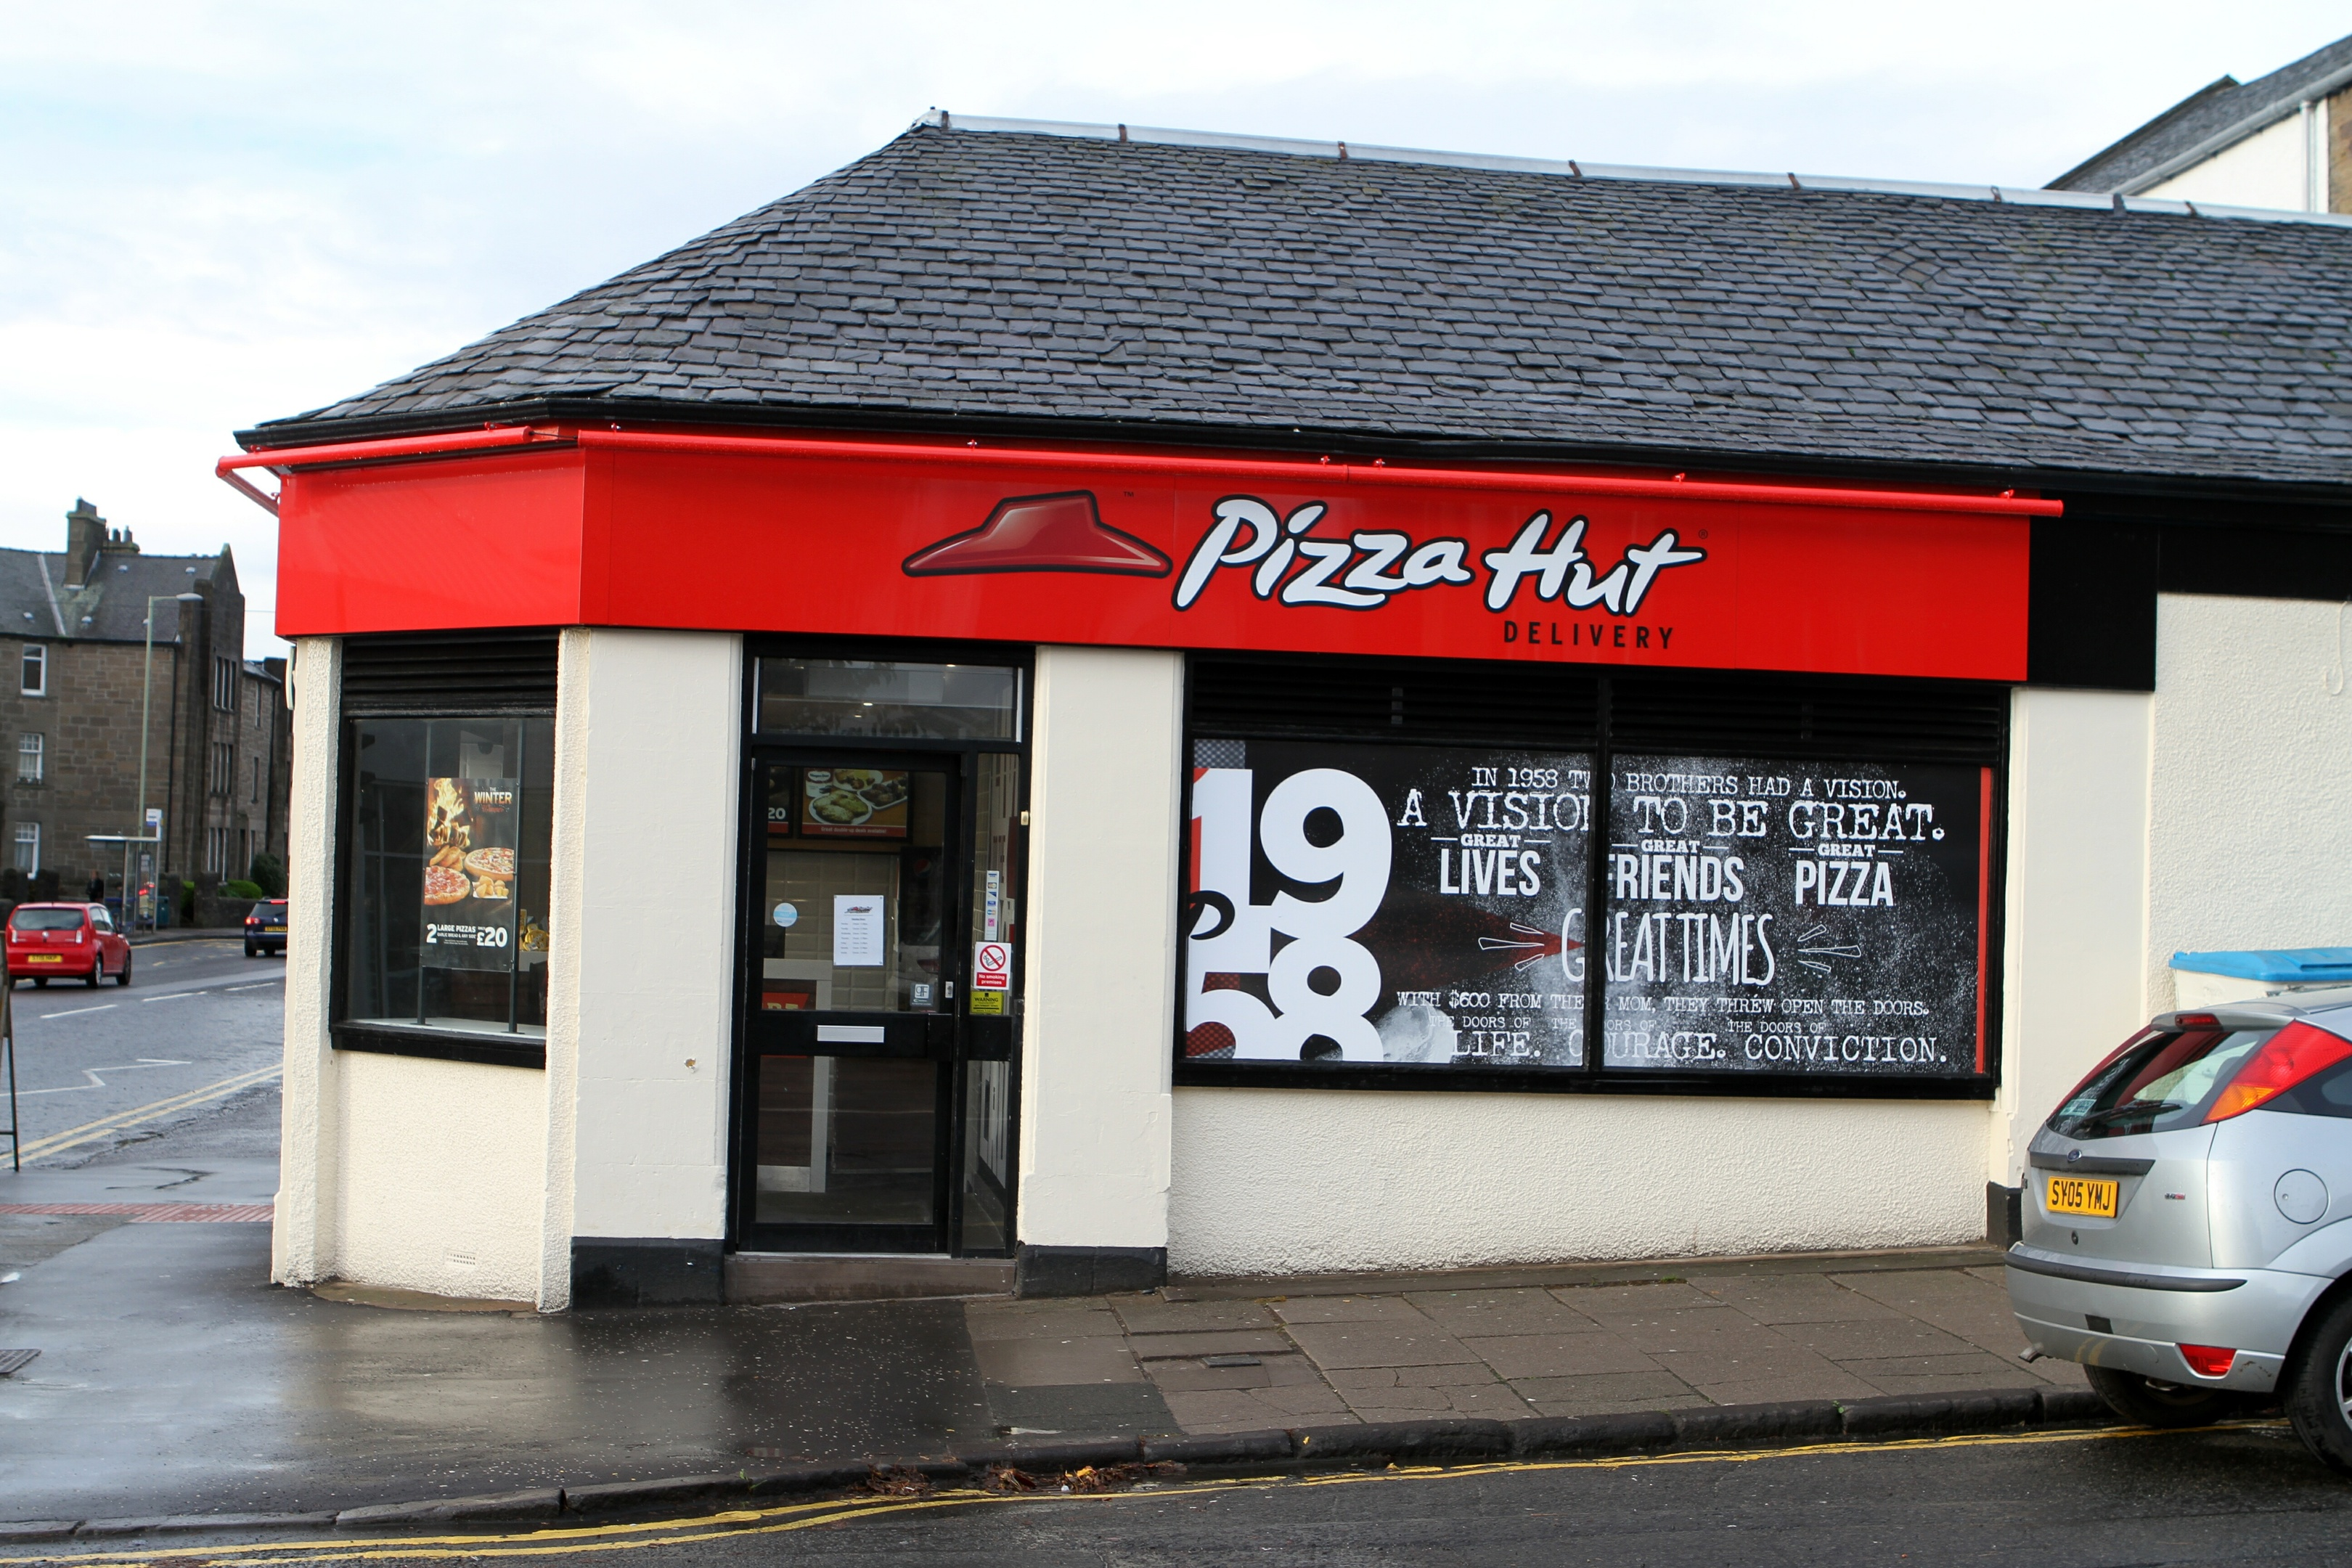 The former Pizza Hut branch on Church Street.